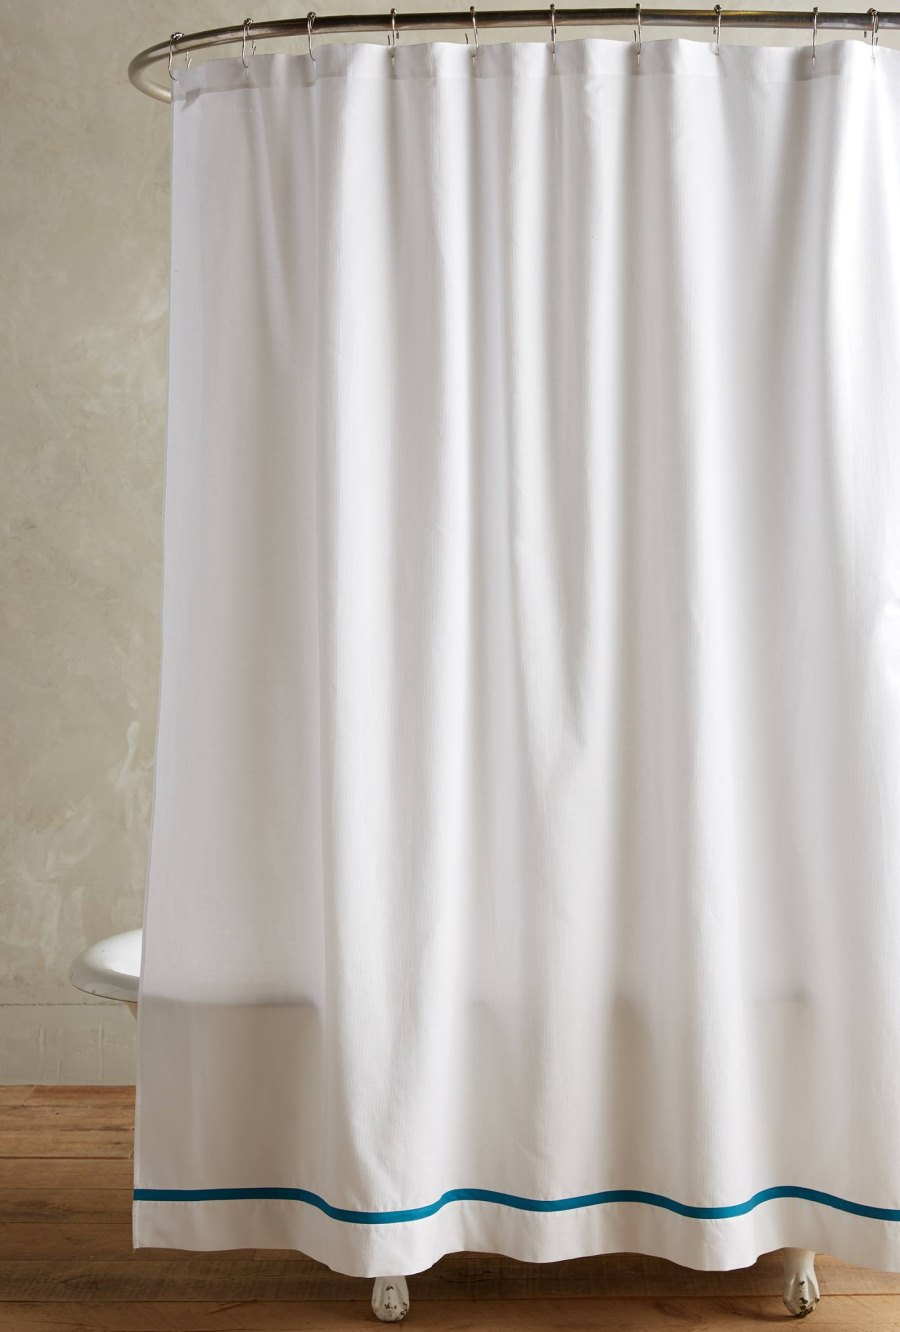 White fabric shower curtain - View In Gallery Pique Cotton Shower Curtain From Anthropologie